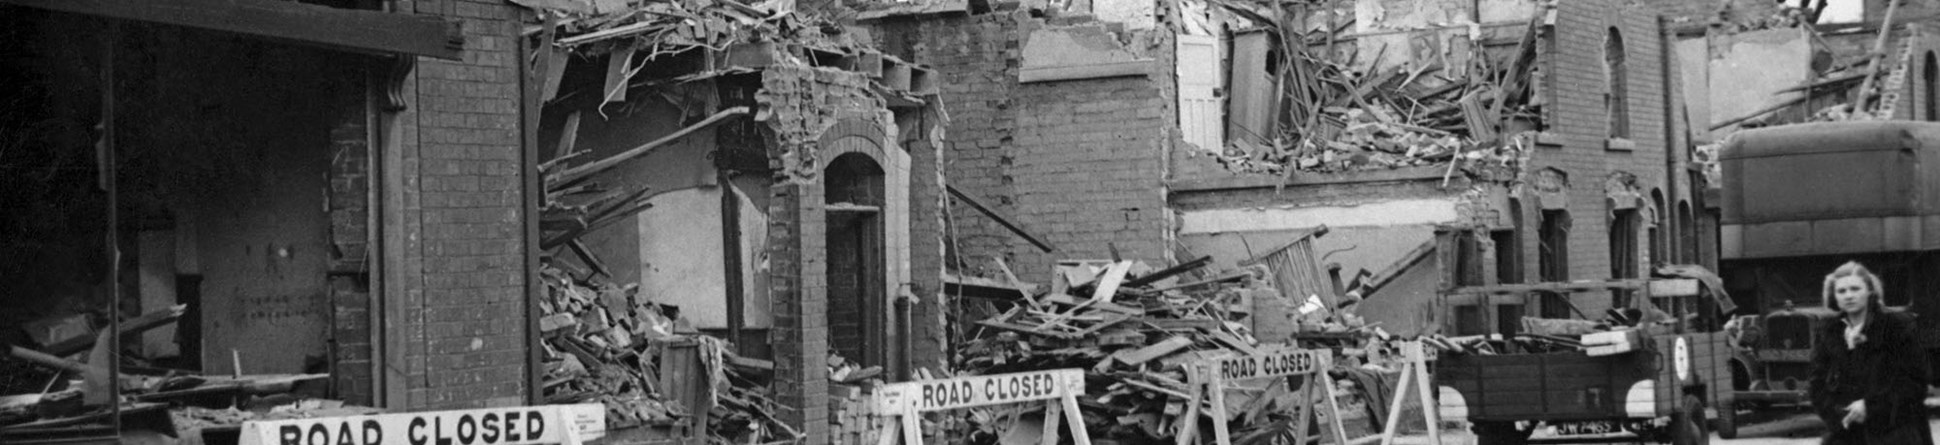 In front of the damaged houses are 'road closed' signs and a woman walking along in the road.